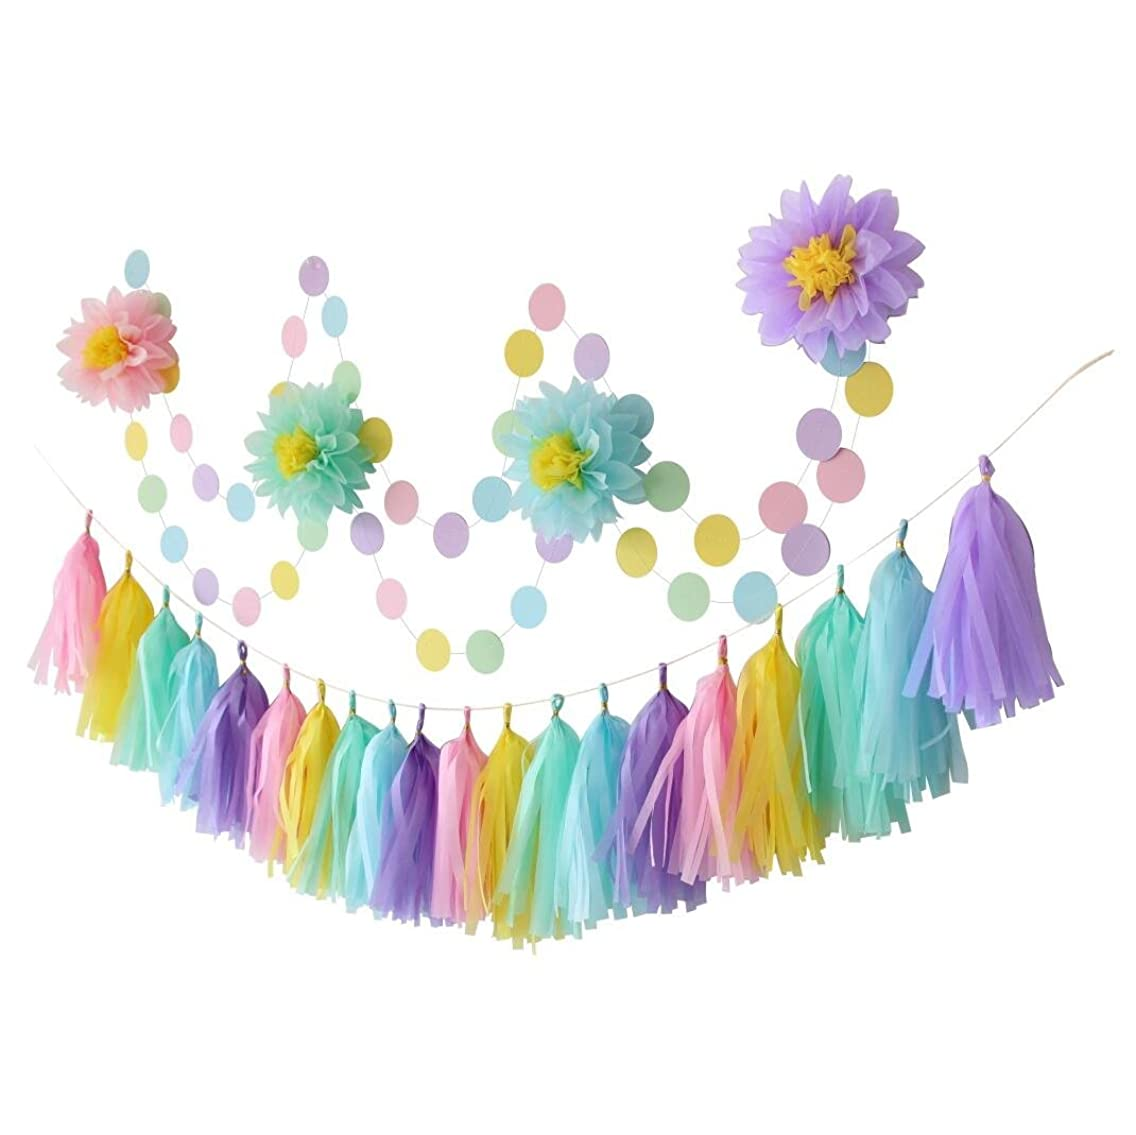 Mybbshower Pastel Hanging Decorations Kit with Paper Flowers Tassel Garland and Circle Garland for Children's Birthday Party